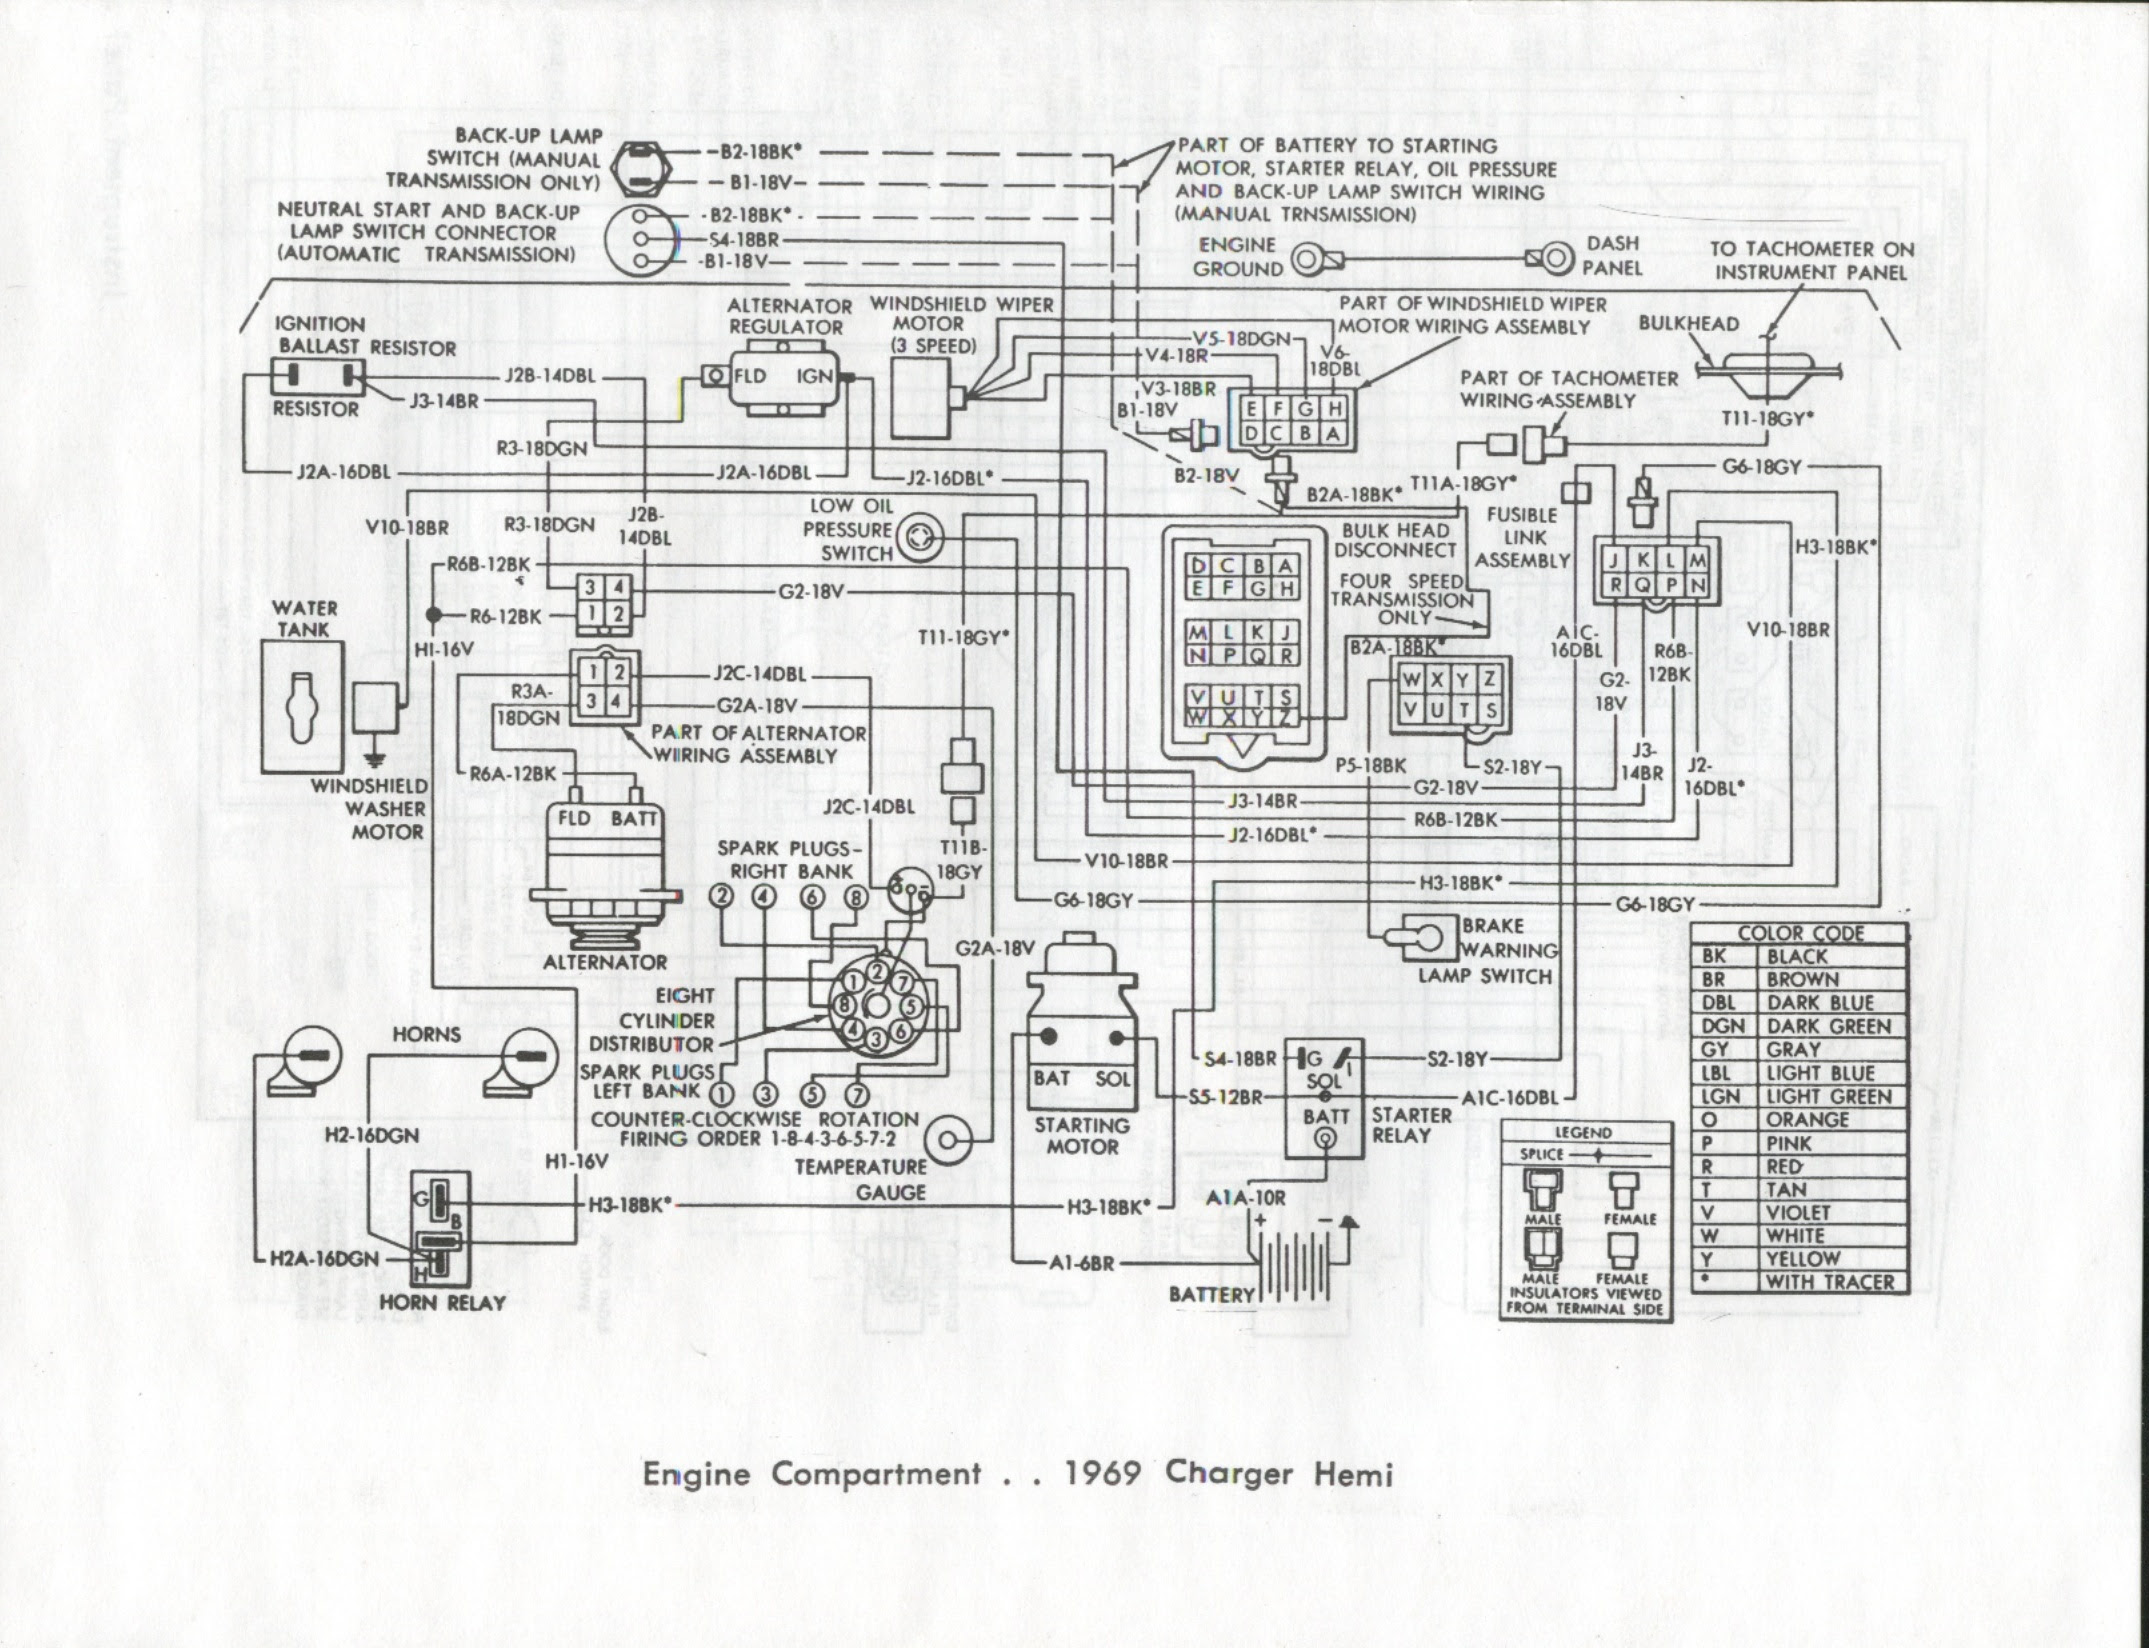 1969 Dodge Charger Wiring Diagram Wiring Diagram Visual Visual Cfcarsnoleggio It